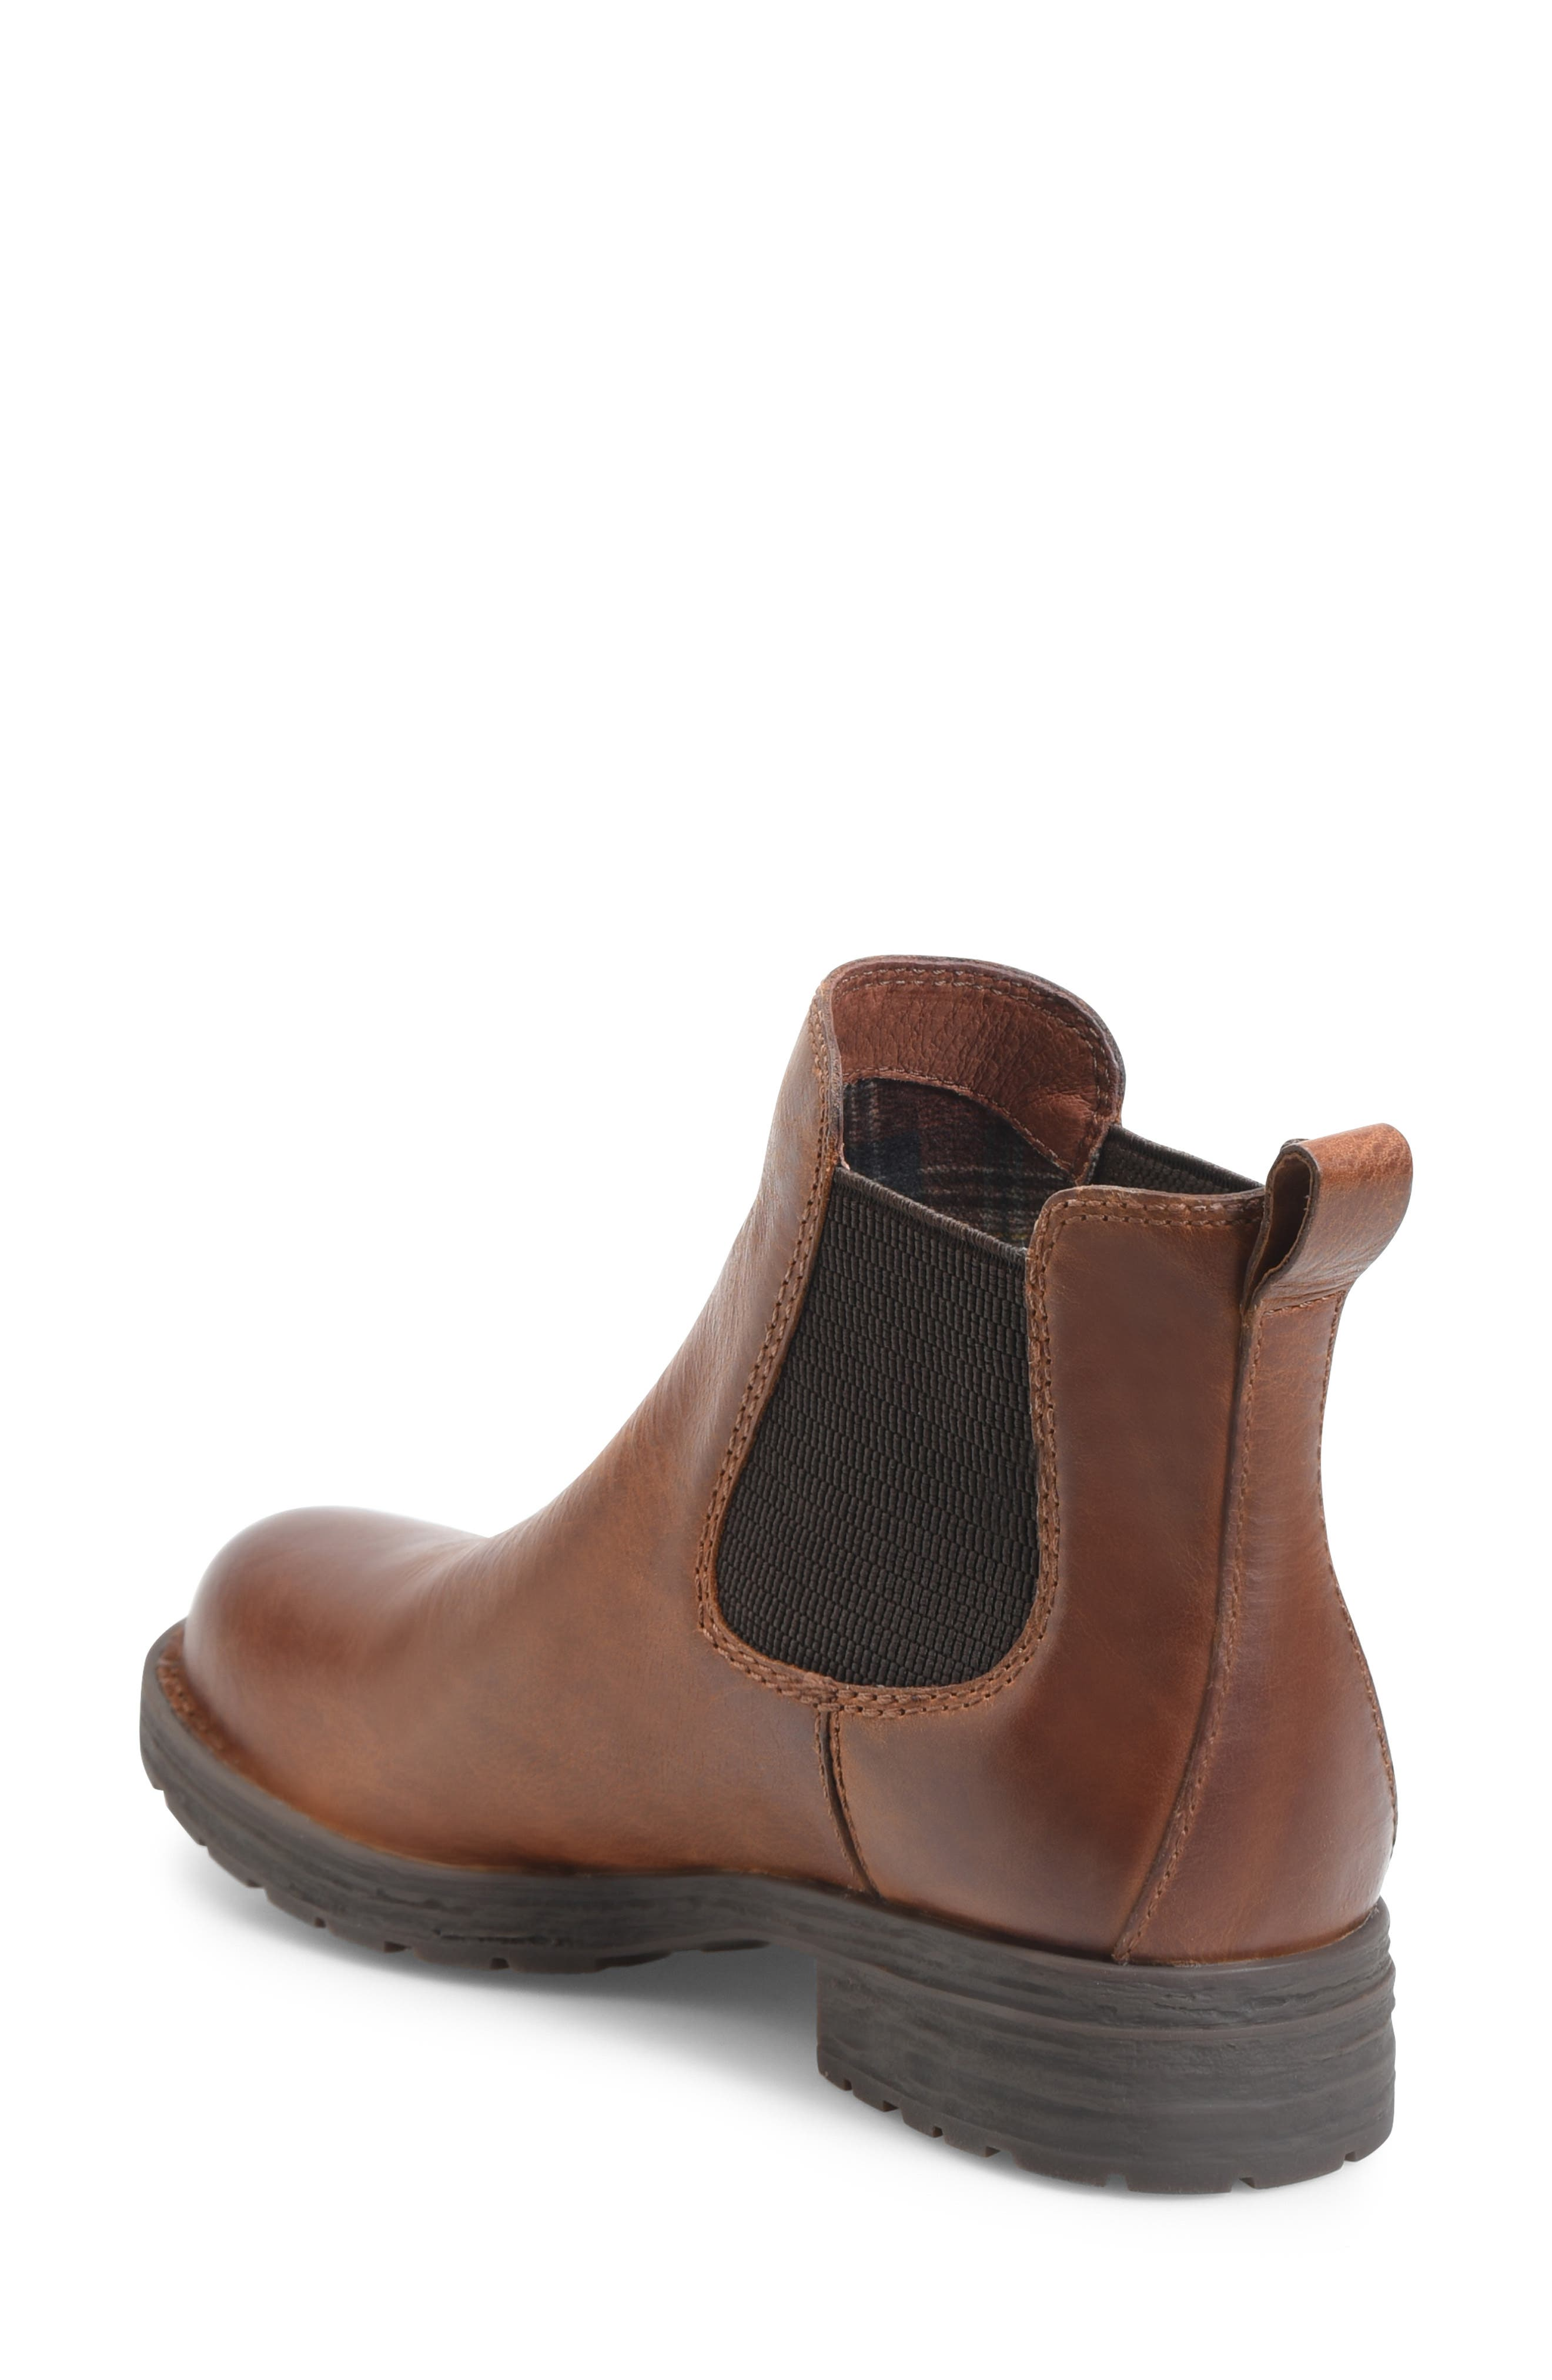 2559a02bf856 born boots for women